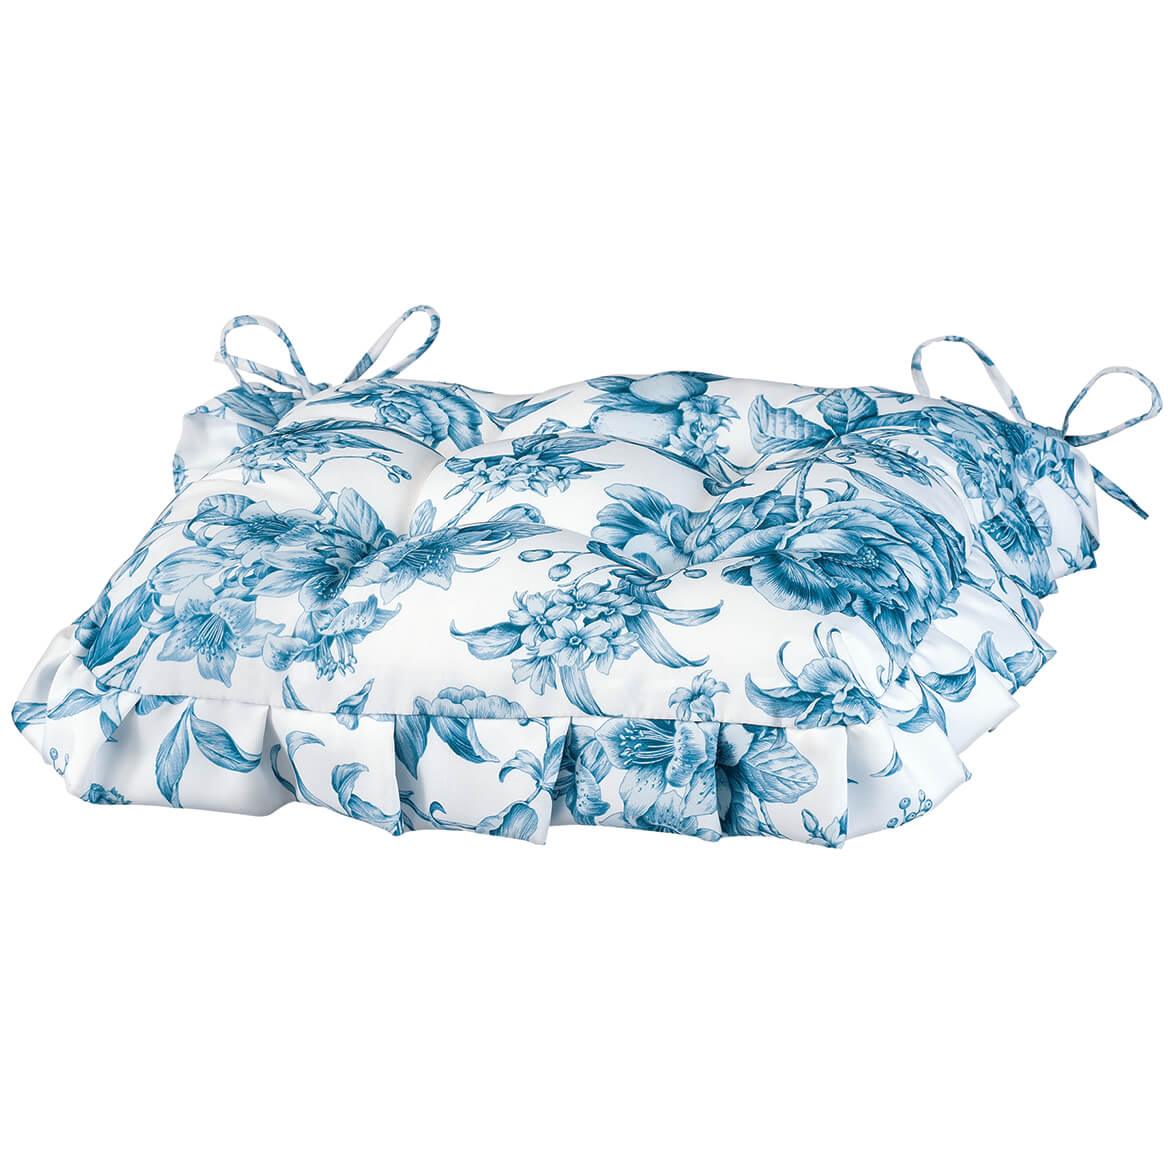 William Roberts Blue Floral Toile Chair Pad-367562